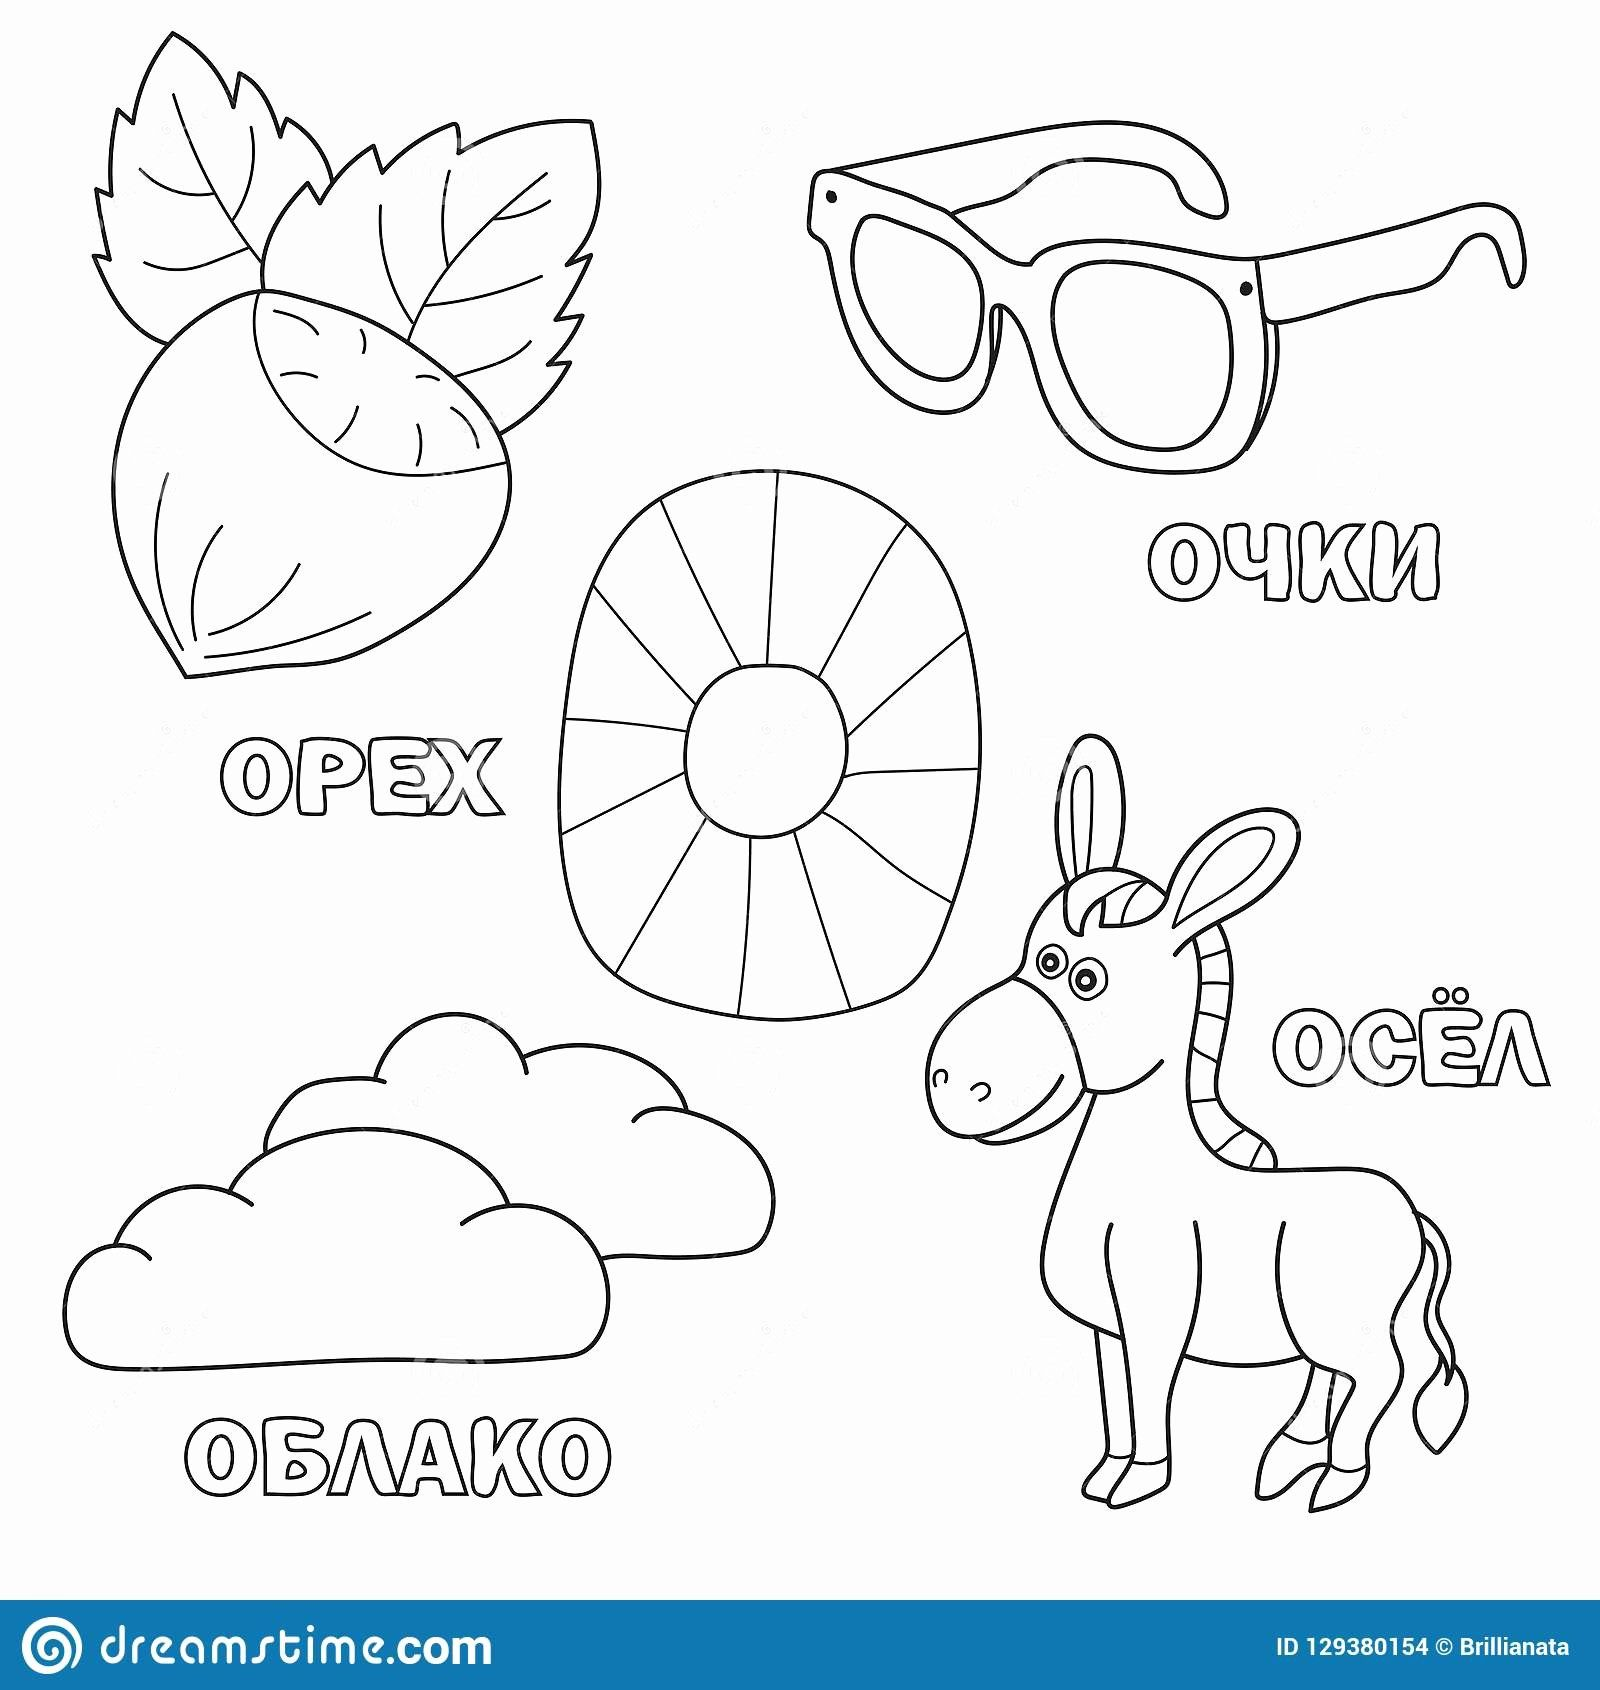 Animal Coloring Pages For 1st Grade Best Of Dayanandwebb Alf Worksheet Silent K Worksheets Cursive In 2020 Animal Coloring Pages Coloring Pages Animal Coloring Books